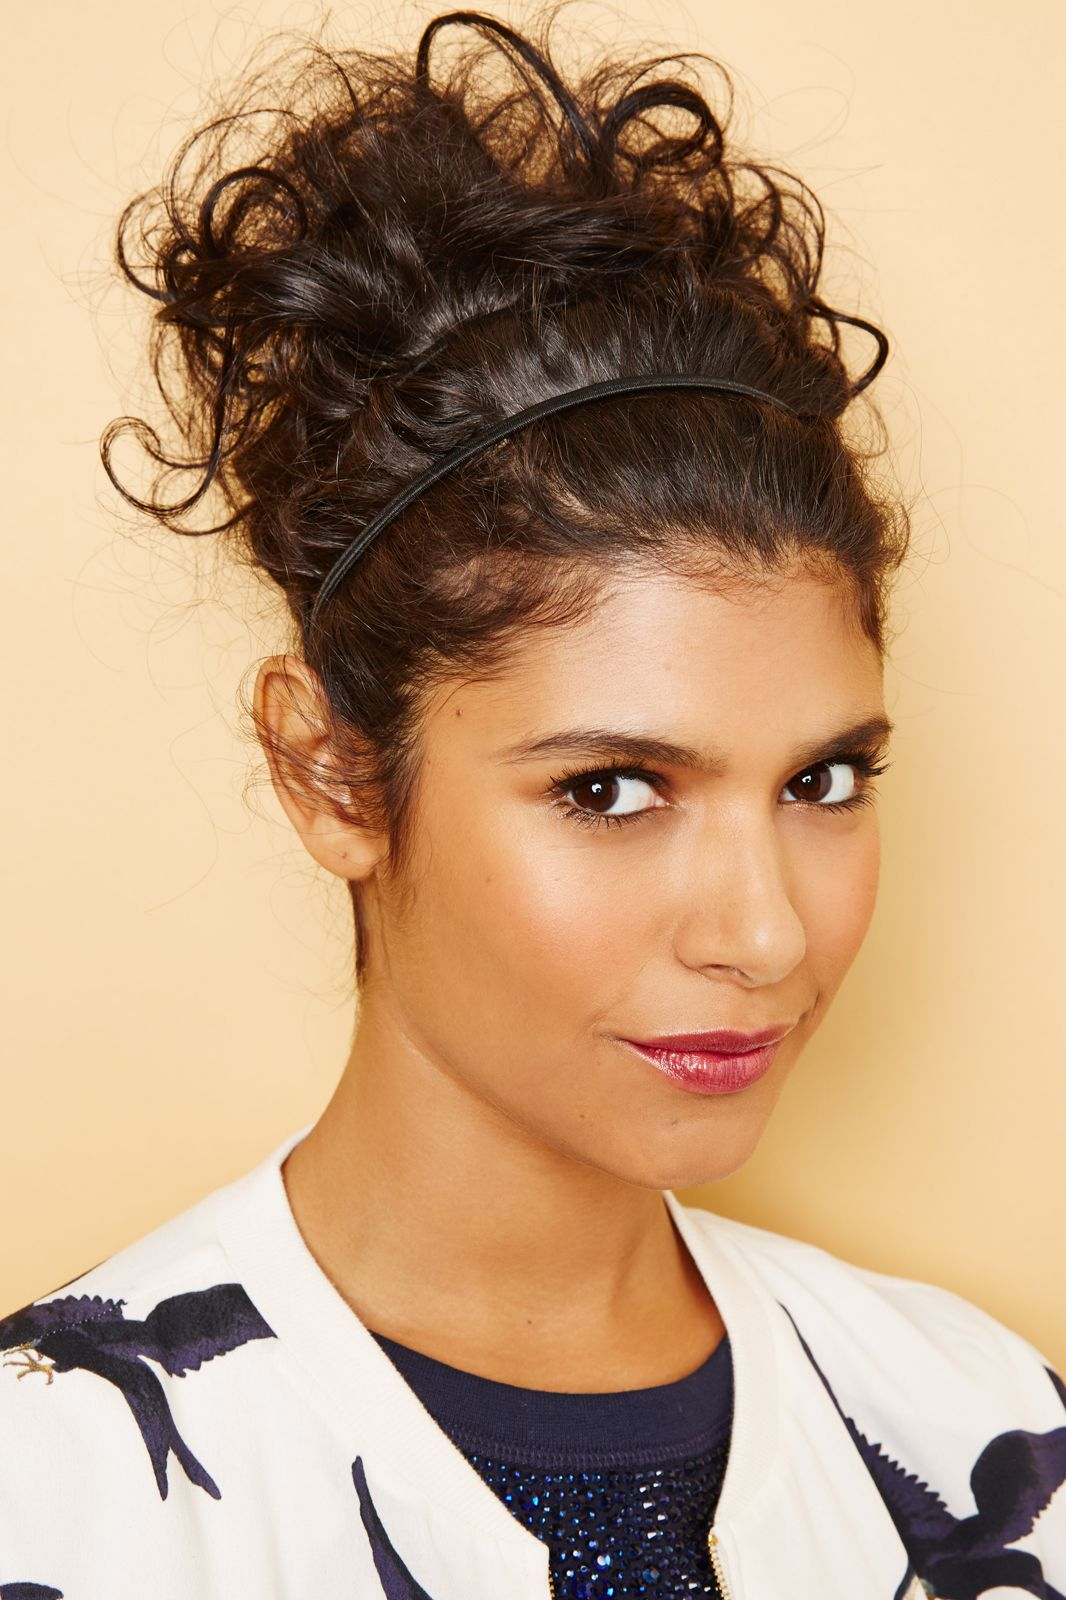 Curly hairstyles spring diy looks my style pinterest curly